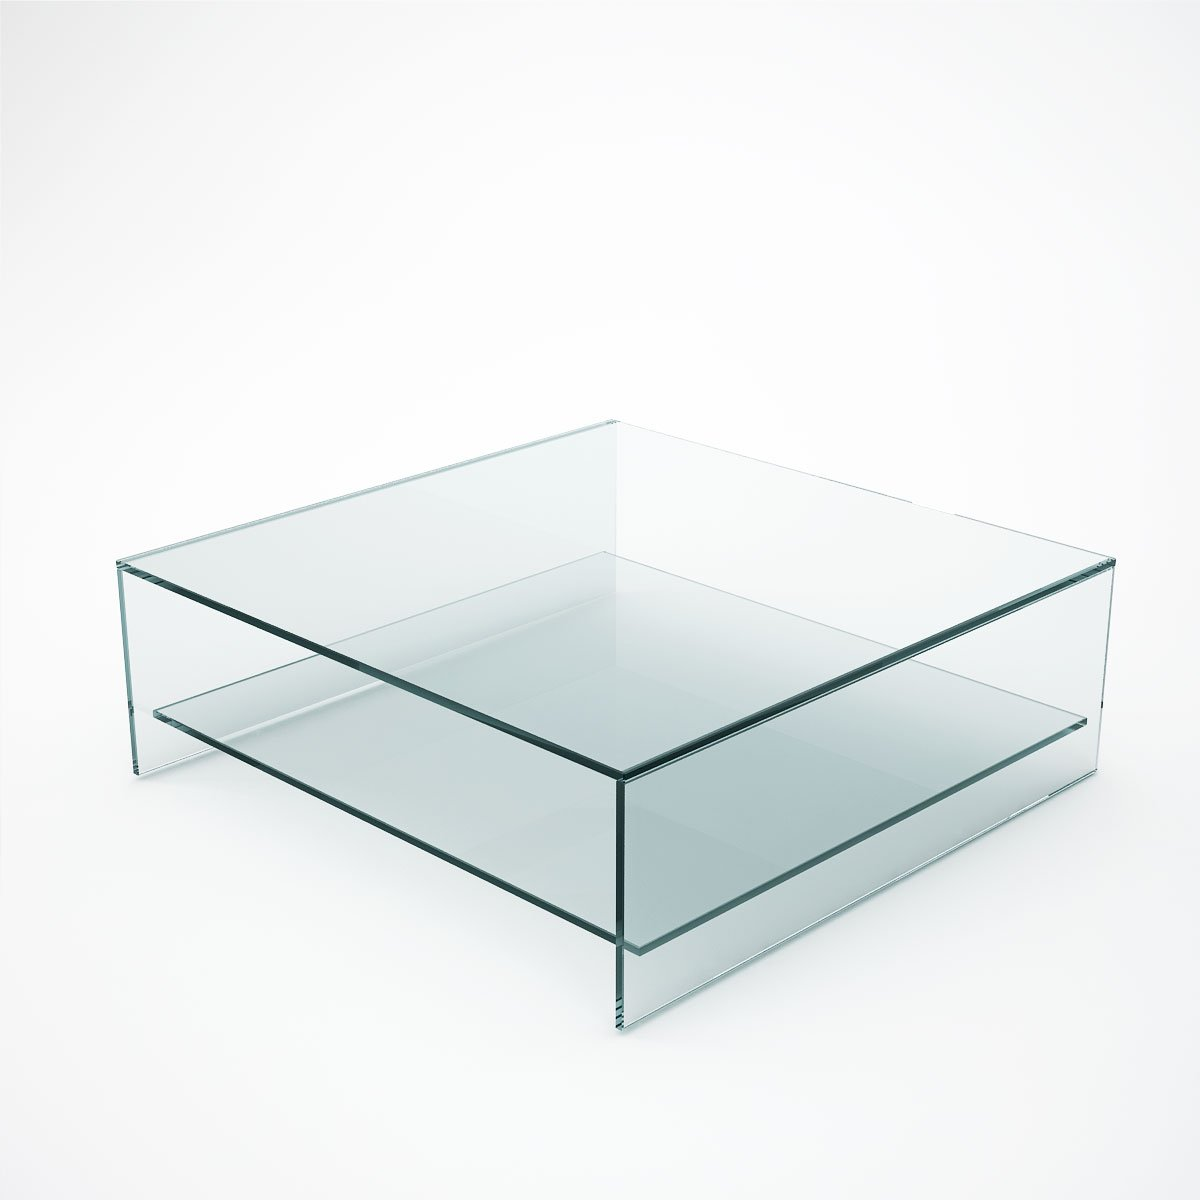 Judd square glass coffee table with shelf klarity glass furniture Square coffee table with shelf